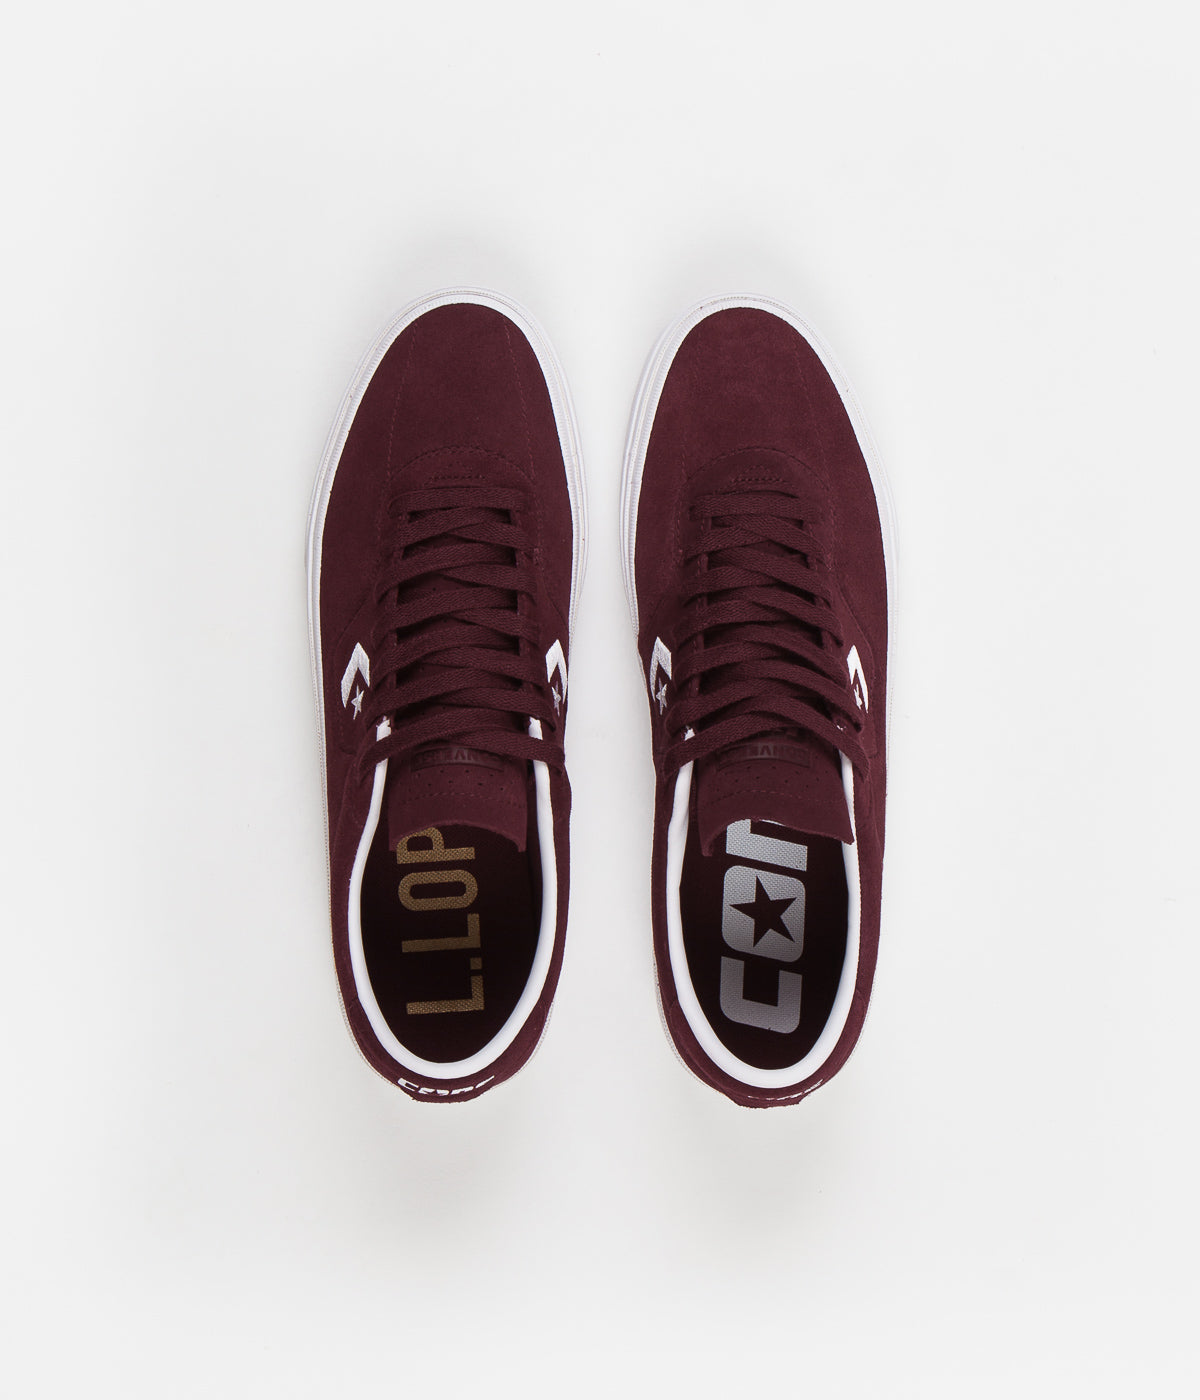 Converse Louie Lopez Pro Ox Classic Suede Shoes - Dark Burgundy / White / Gum